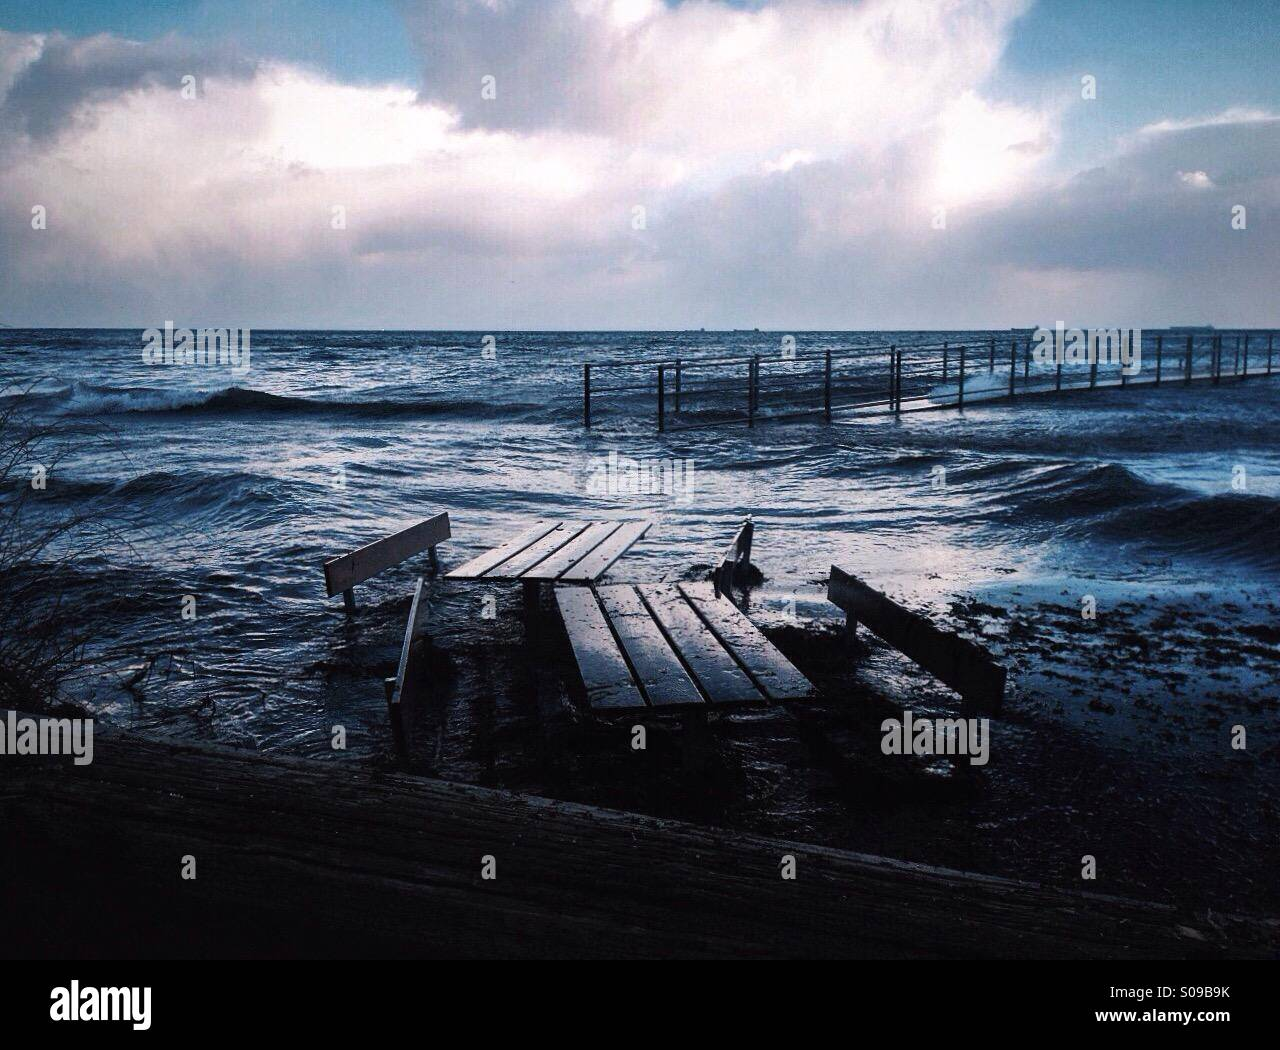 Early phase of flooding during storm in Hellerup, Denmark. - Stock Image